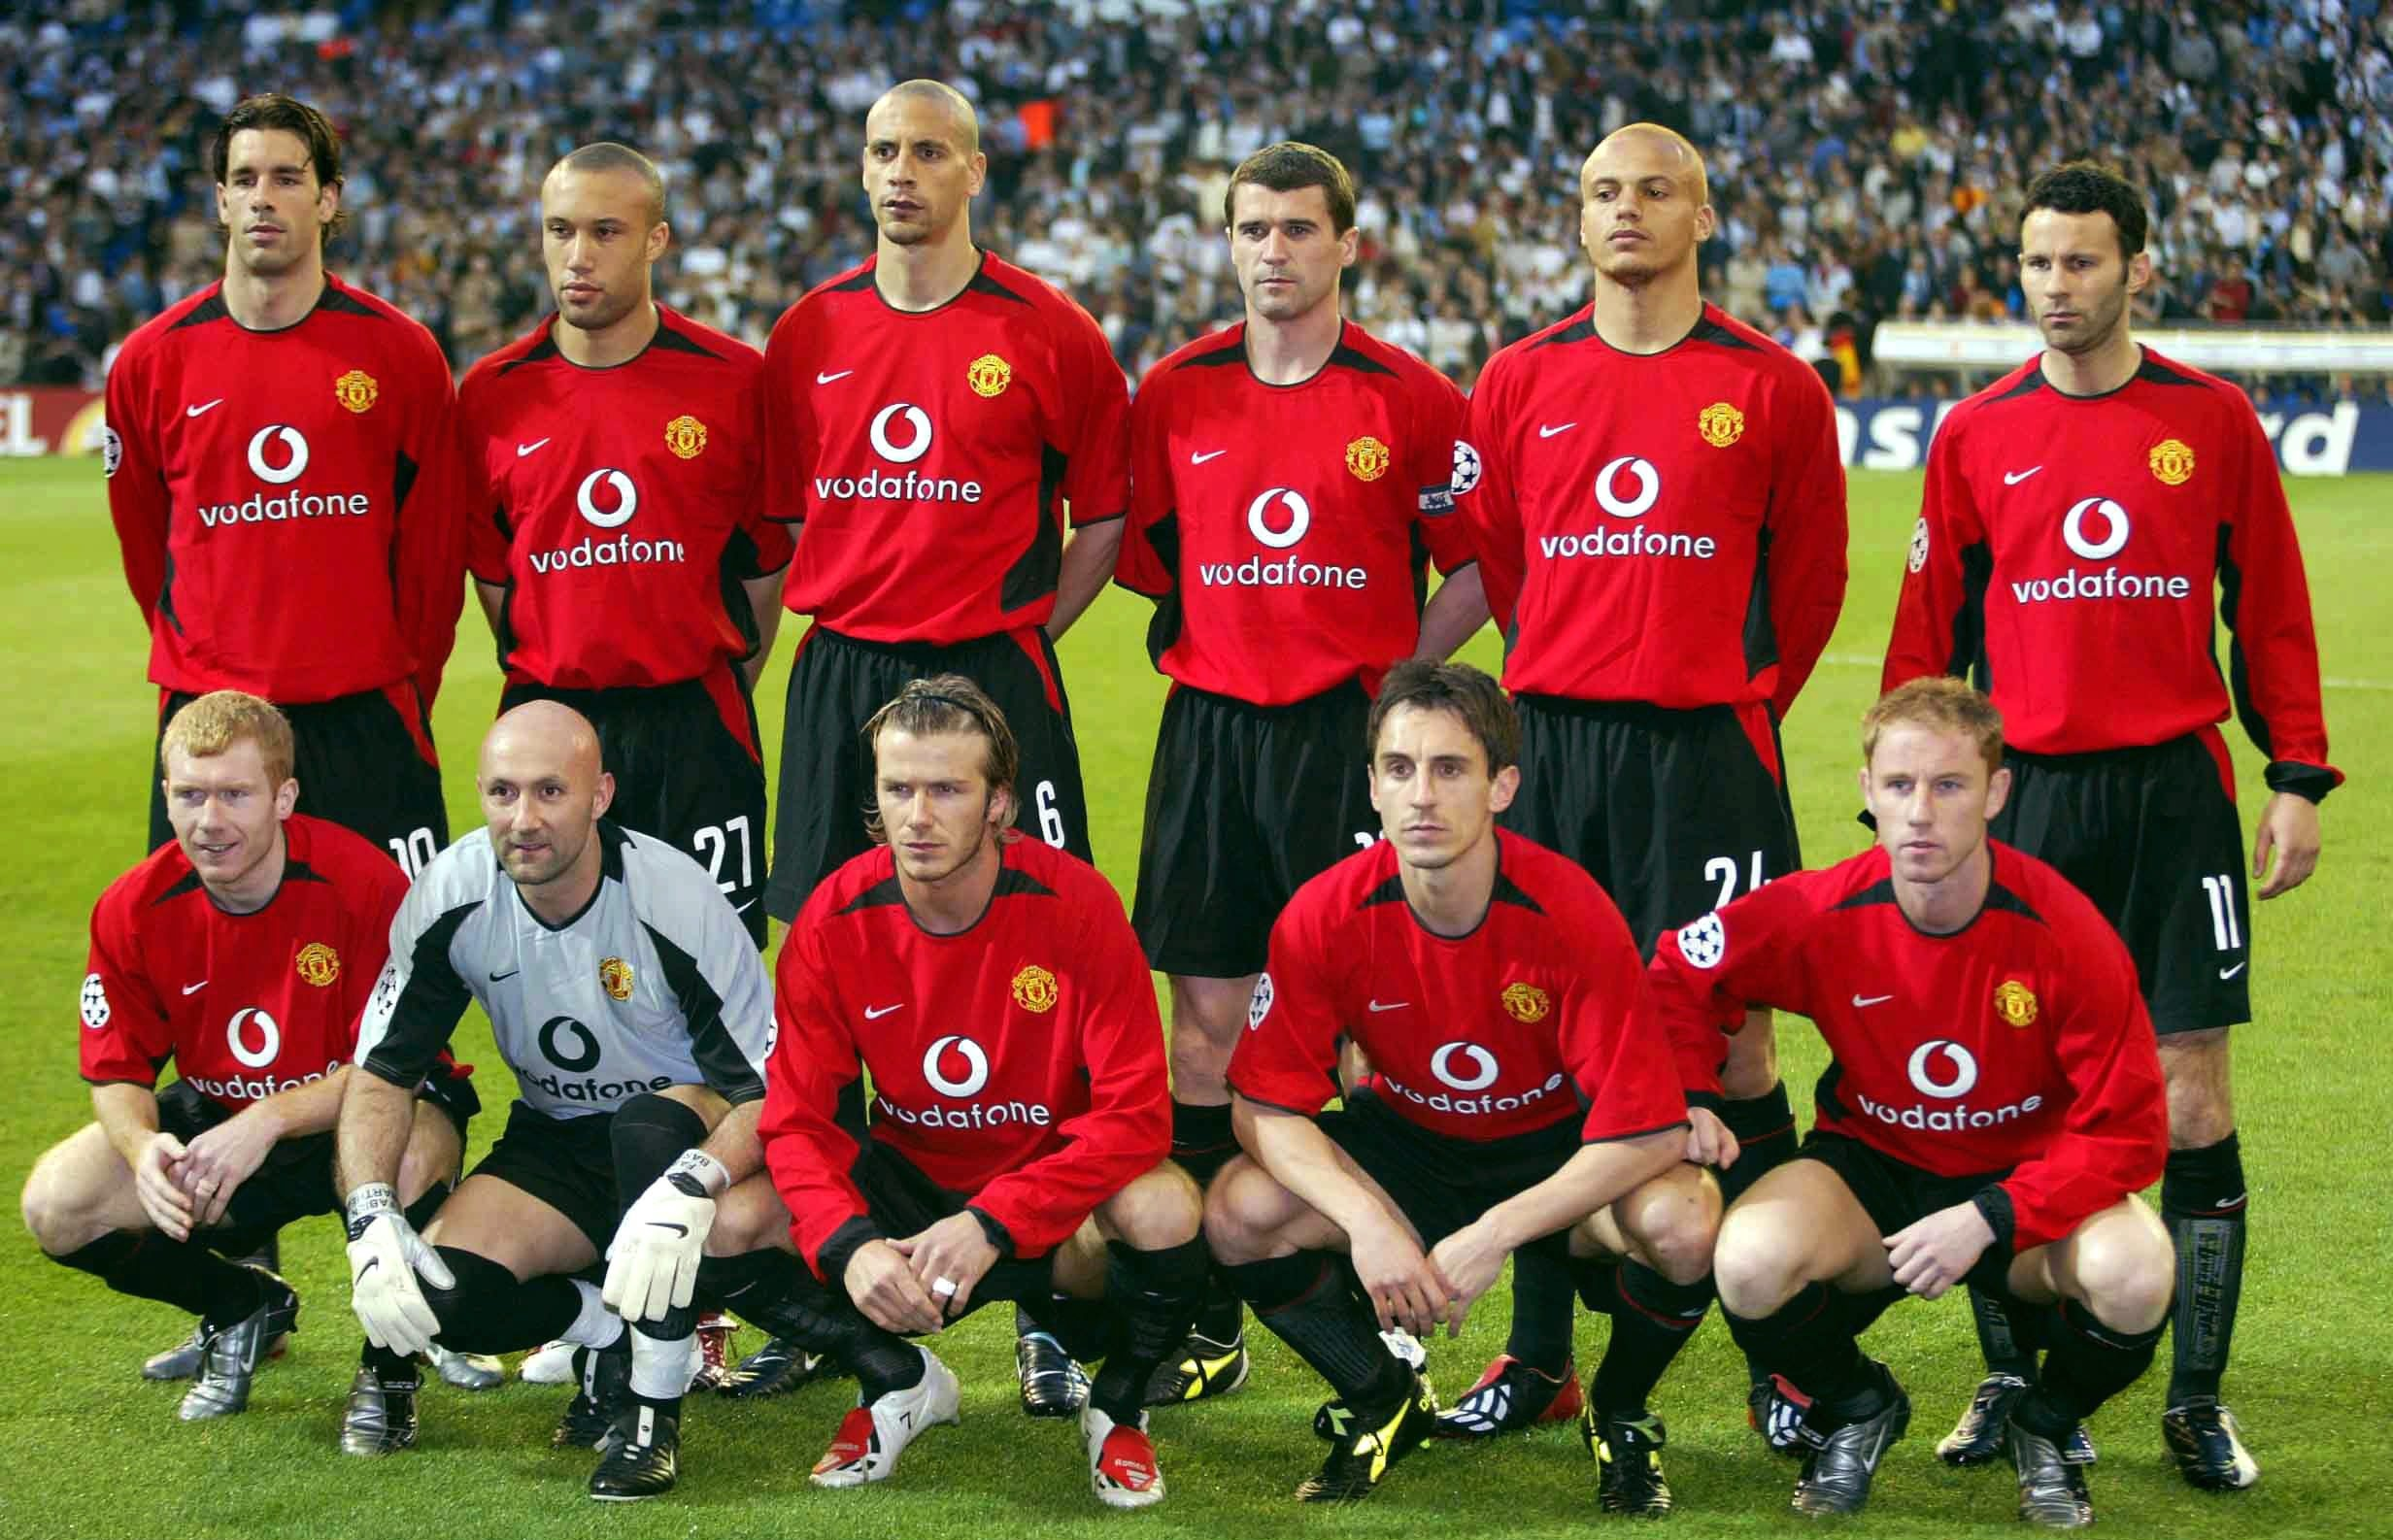 Fussball: Champions League 02/03 Real Madrid - Manchester United